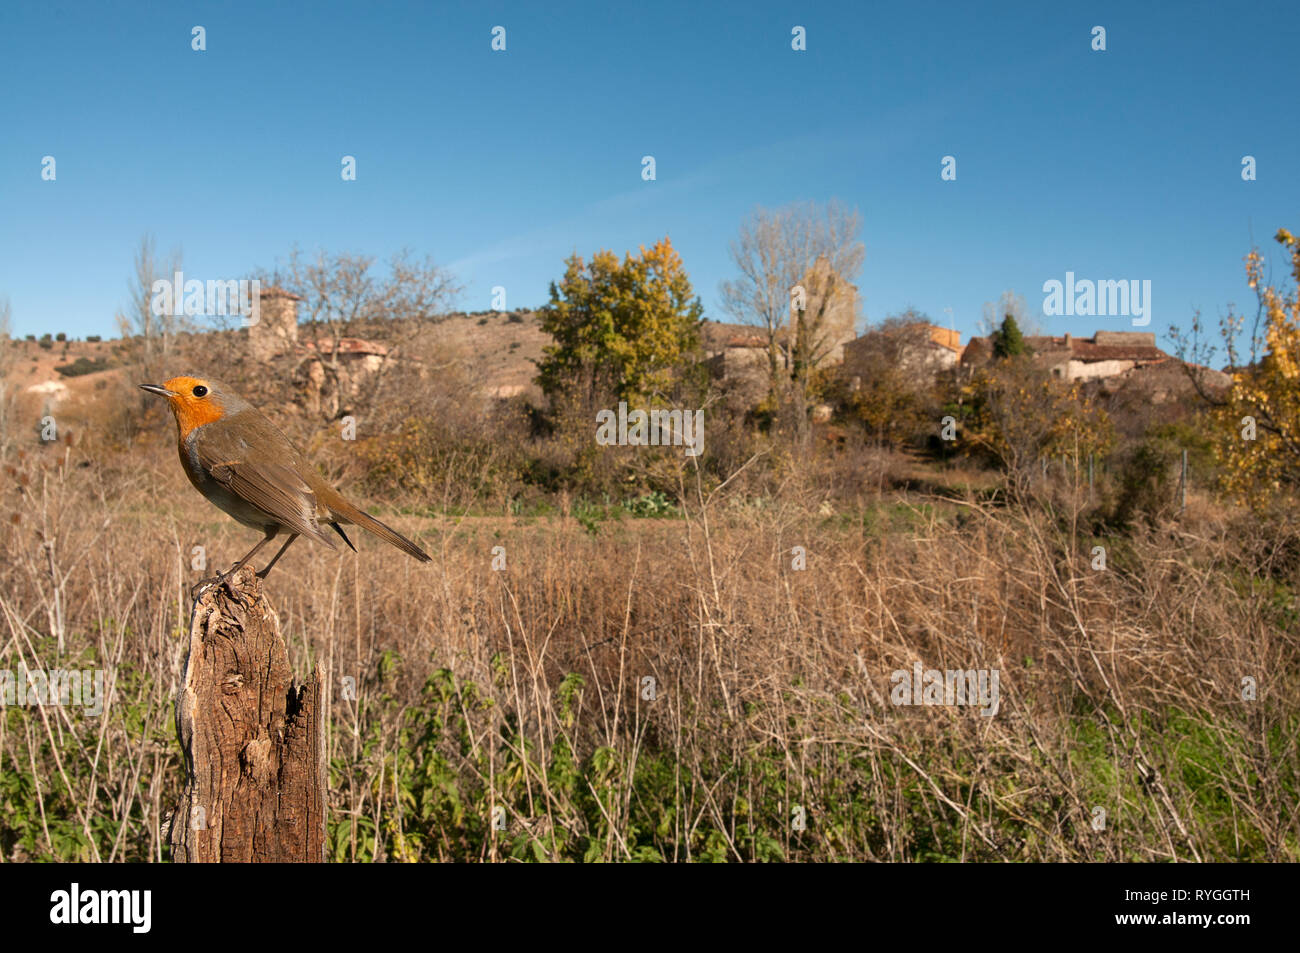 Robin - Erithacus rubecula, perched on a branch with landscape and habitat - Stock Image